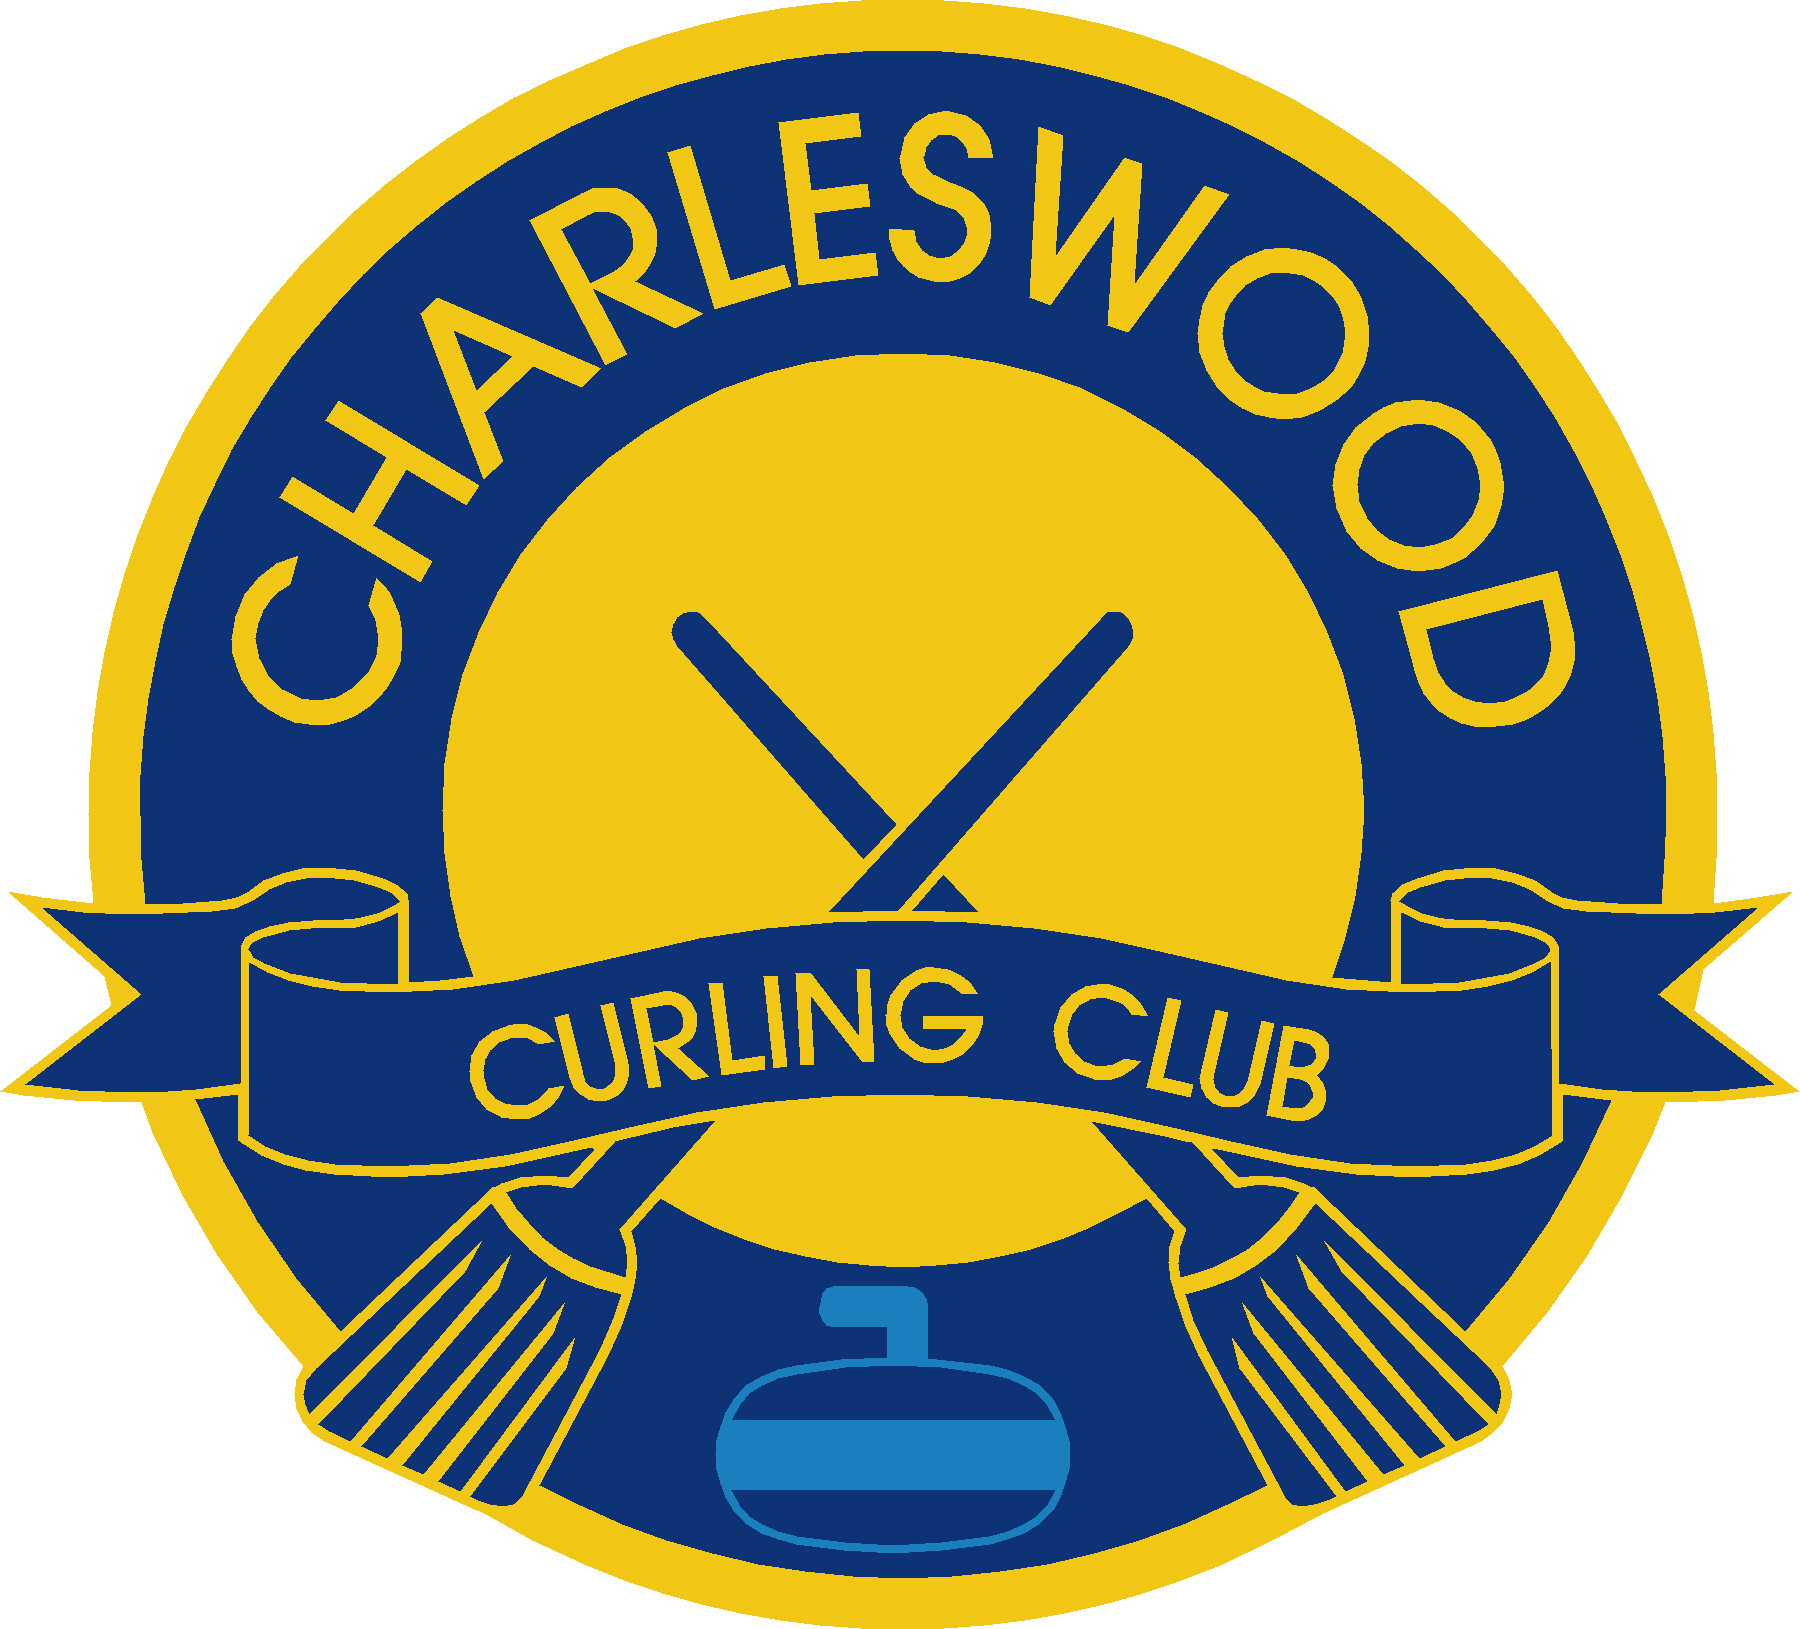 Welcome to the Charleswood Curling Club